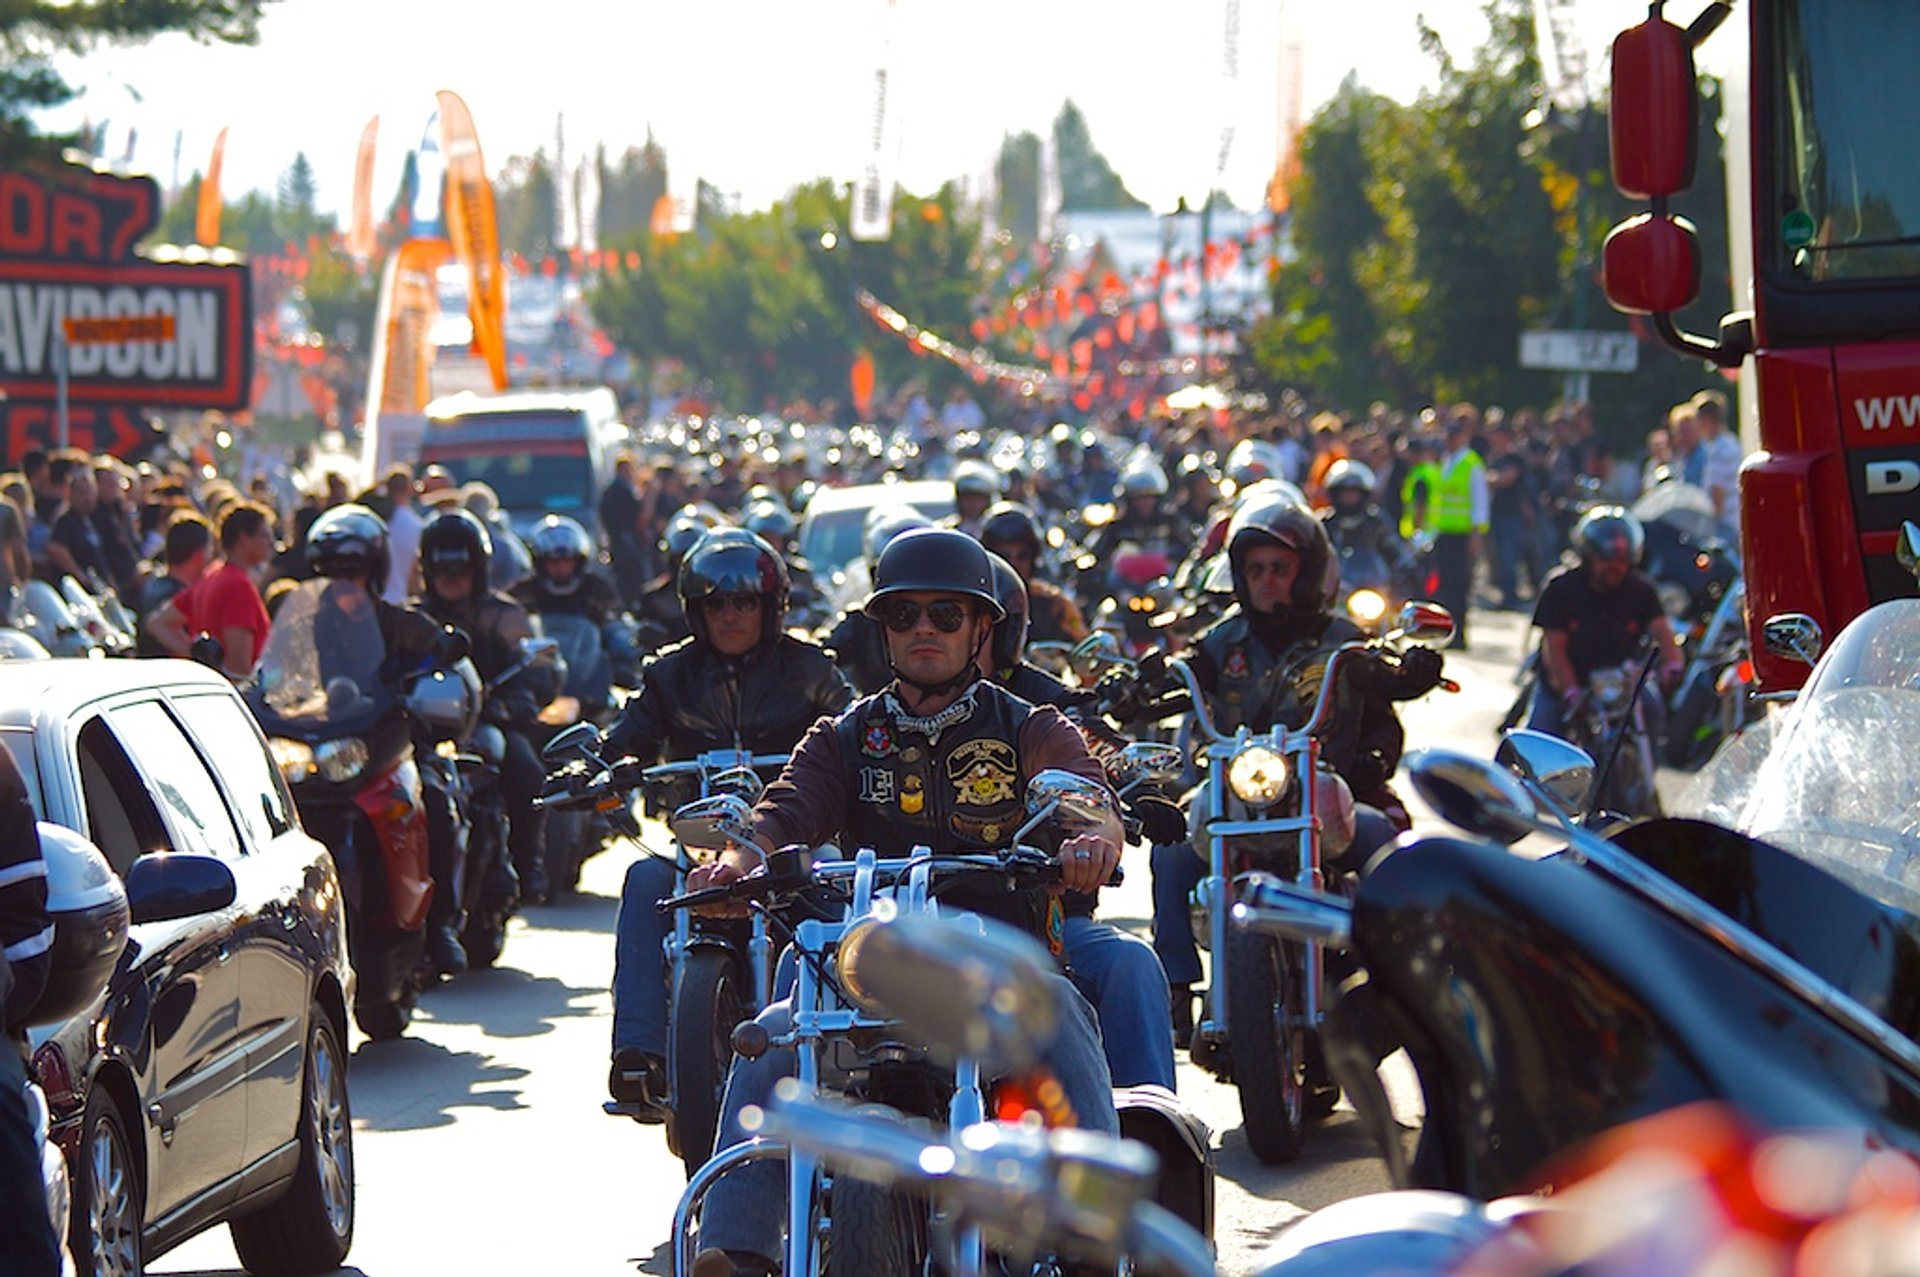 European Bike Week in Austria - Best Time